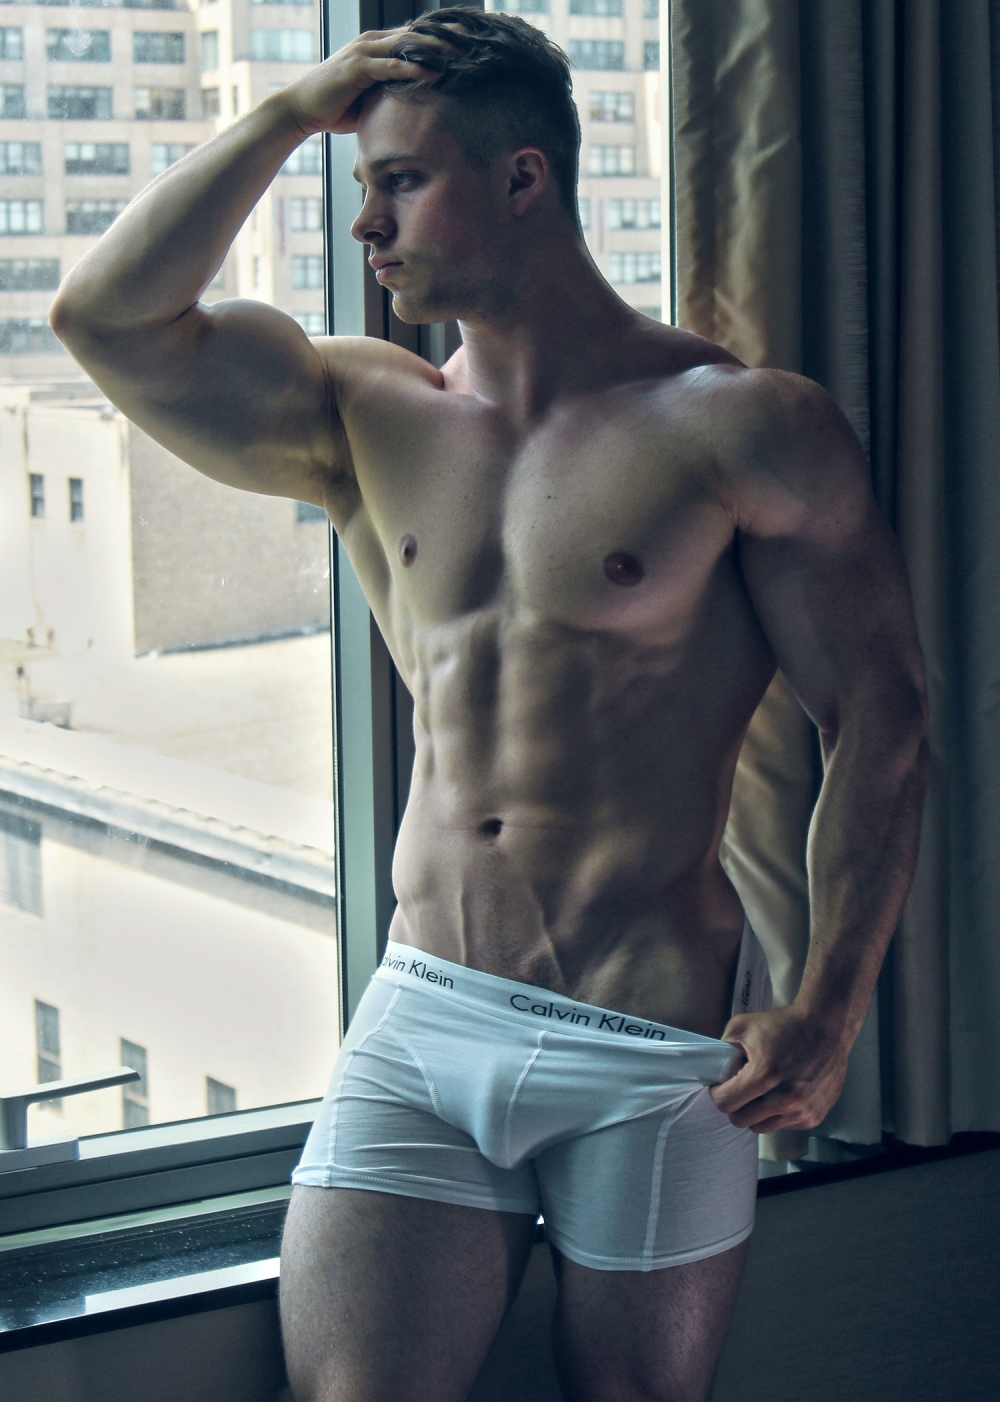 nick-sandell-for-adon-magazine-2